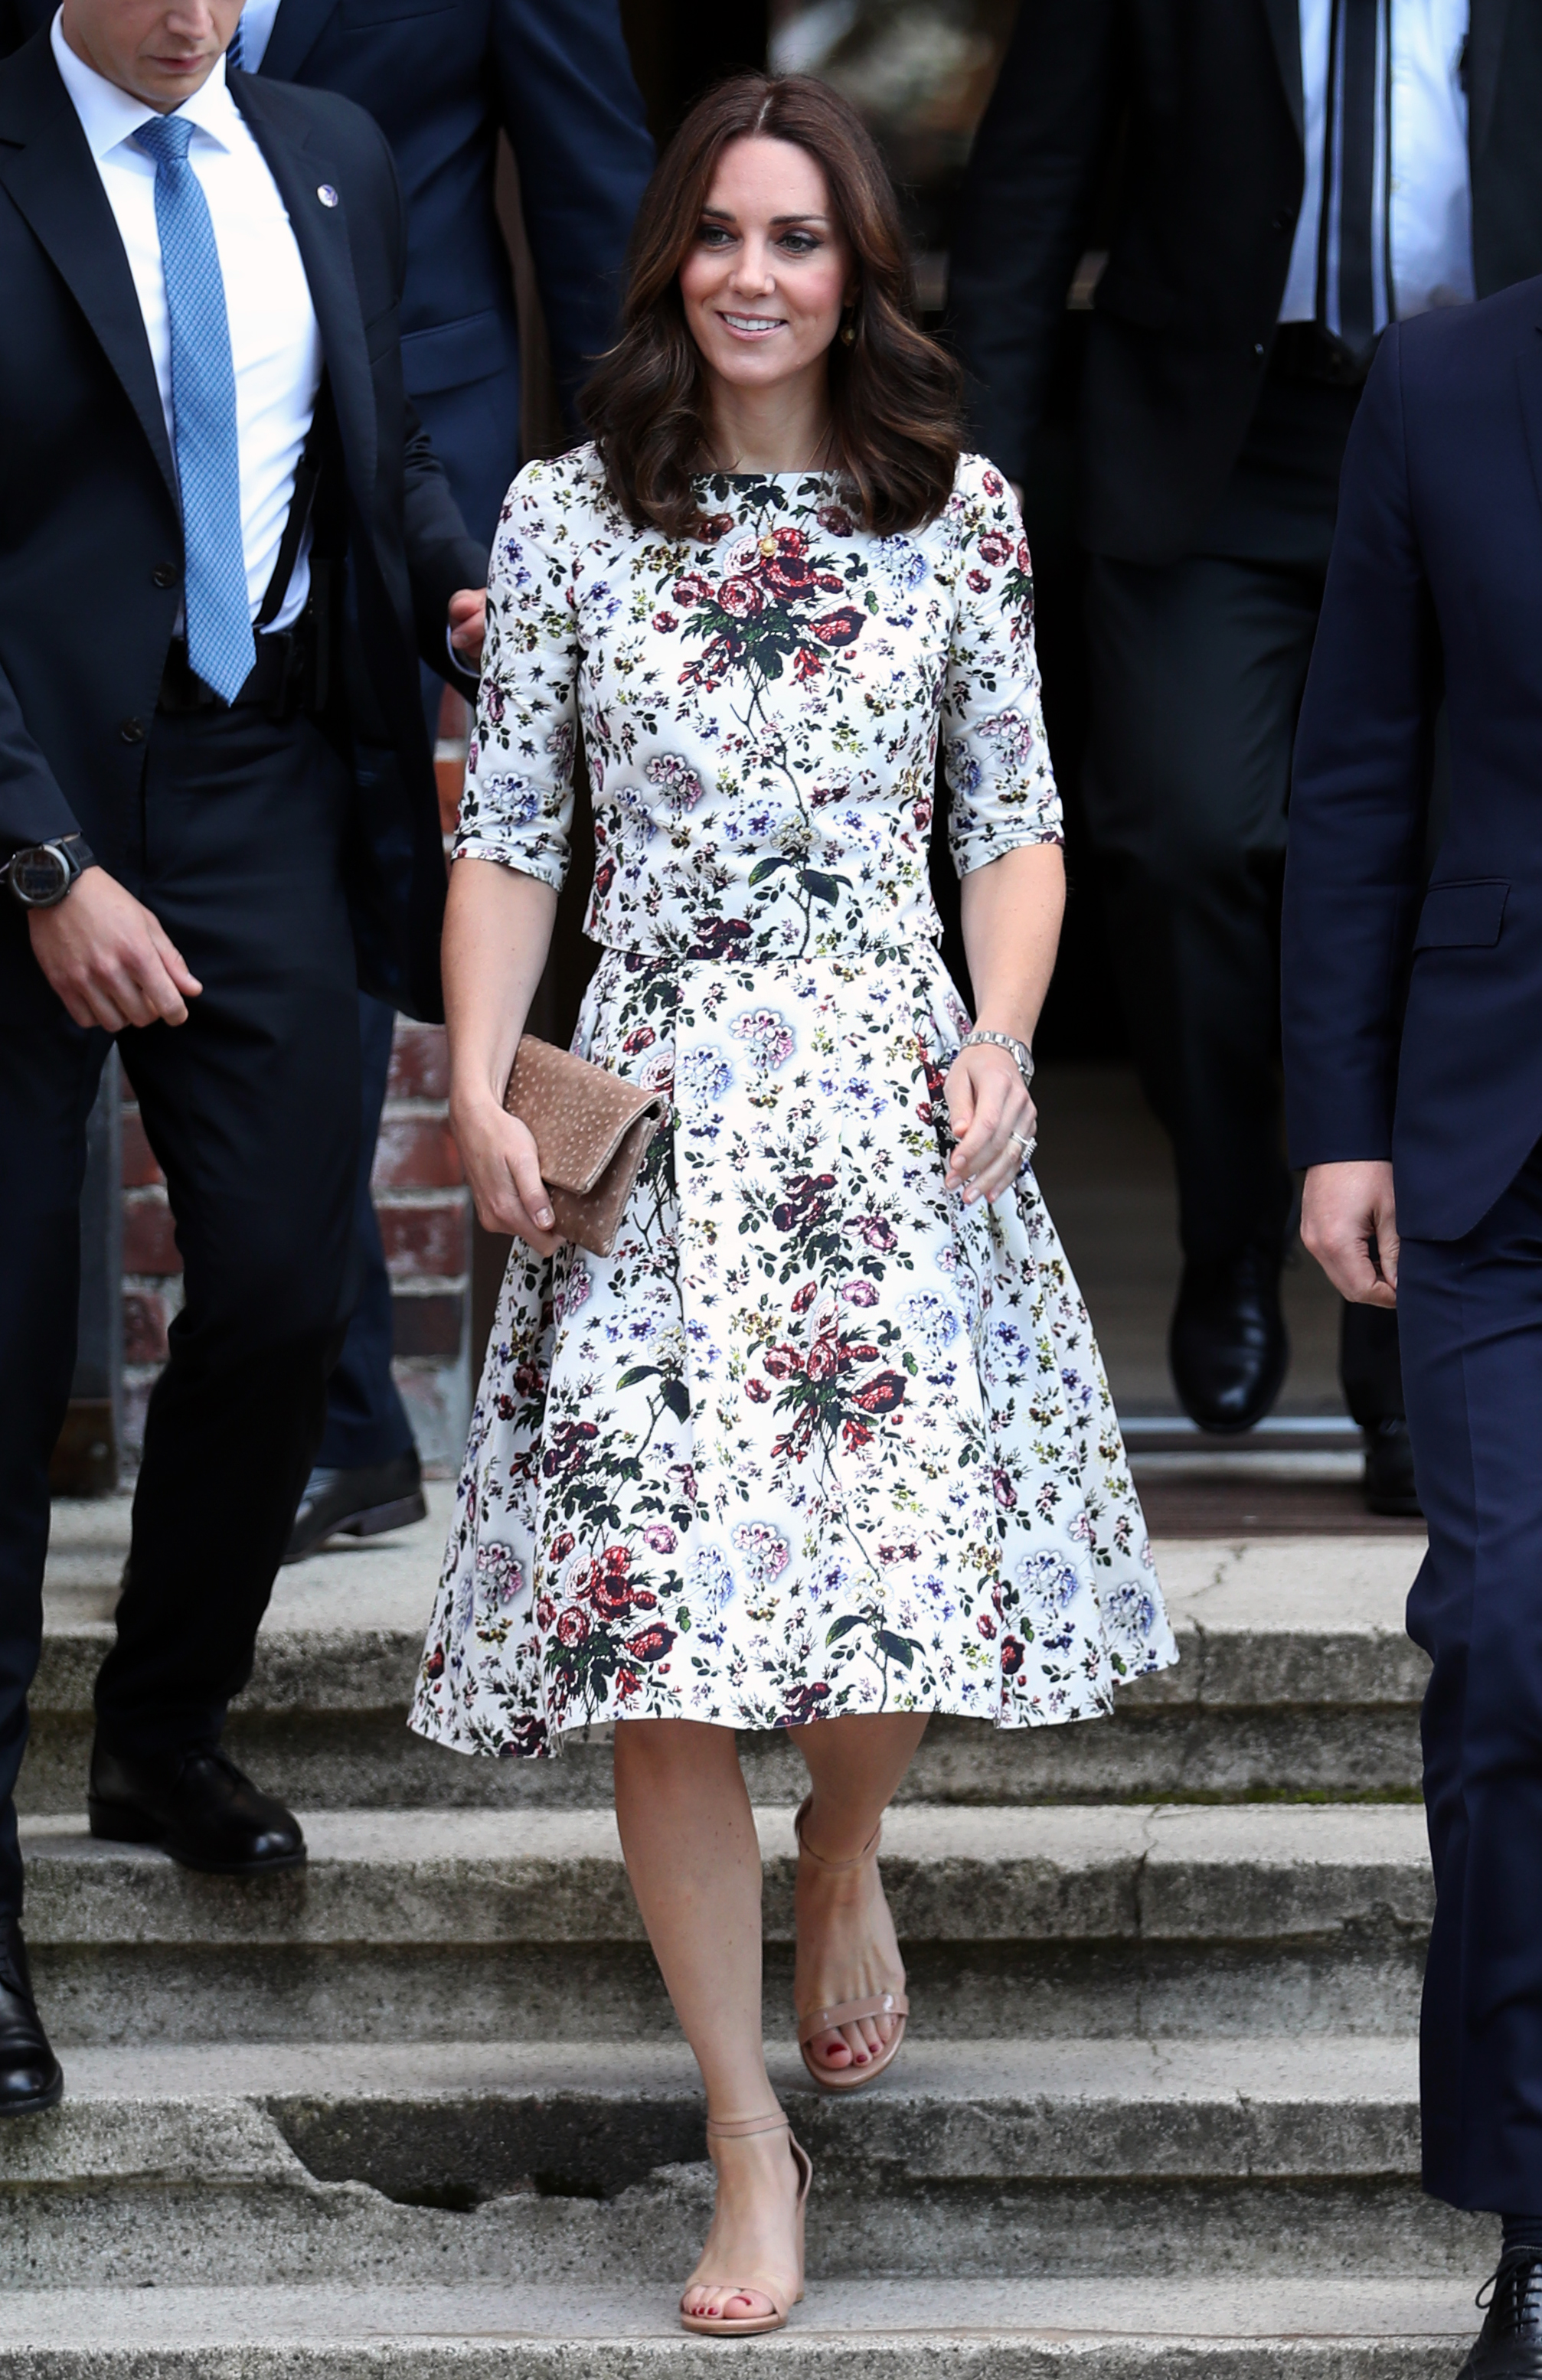 The Duchess of Cambridge during a visit the former Nazi Germany Concentration Camp, Stutthof, on the second day of their five-day tour of Poland and Germany., Image: 342351386, License: Rights-managed, Restrictions: , Model Release: no, Credit line: Profimedia, Press Association